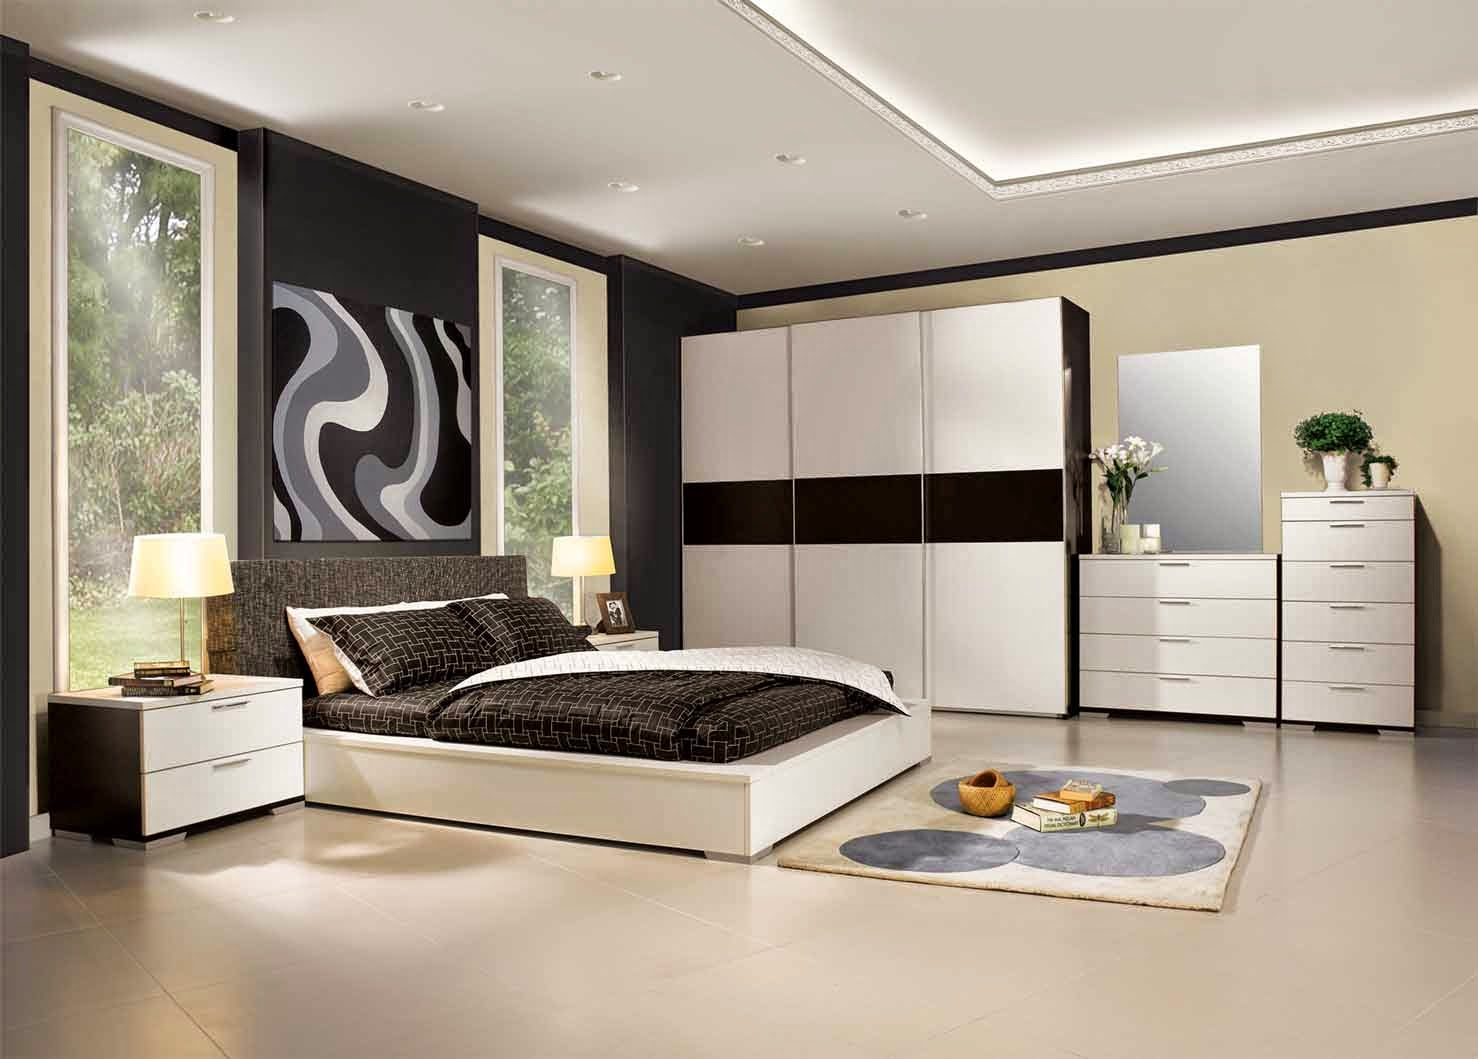 Beautiful bedroom interiors - Most Beautiful Bedroom Interior Designs Ideas 2014 2015 Free Download Most Beautiful Bedroom Interior Designs